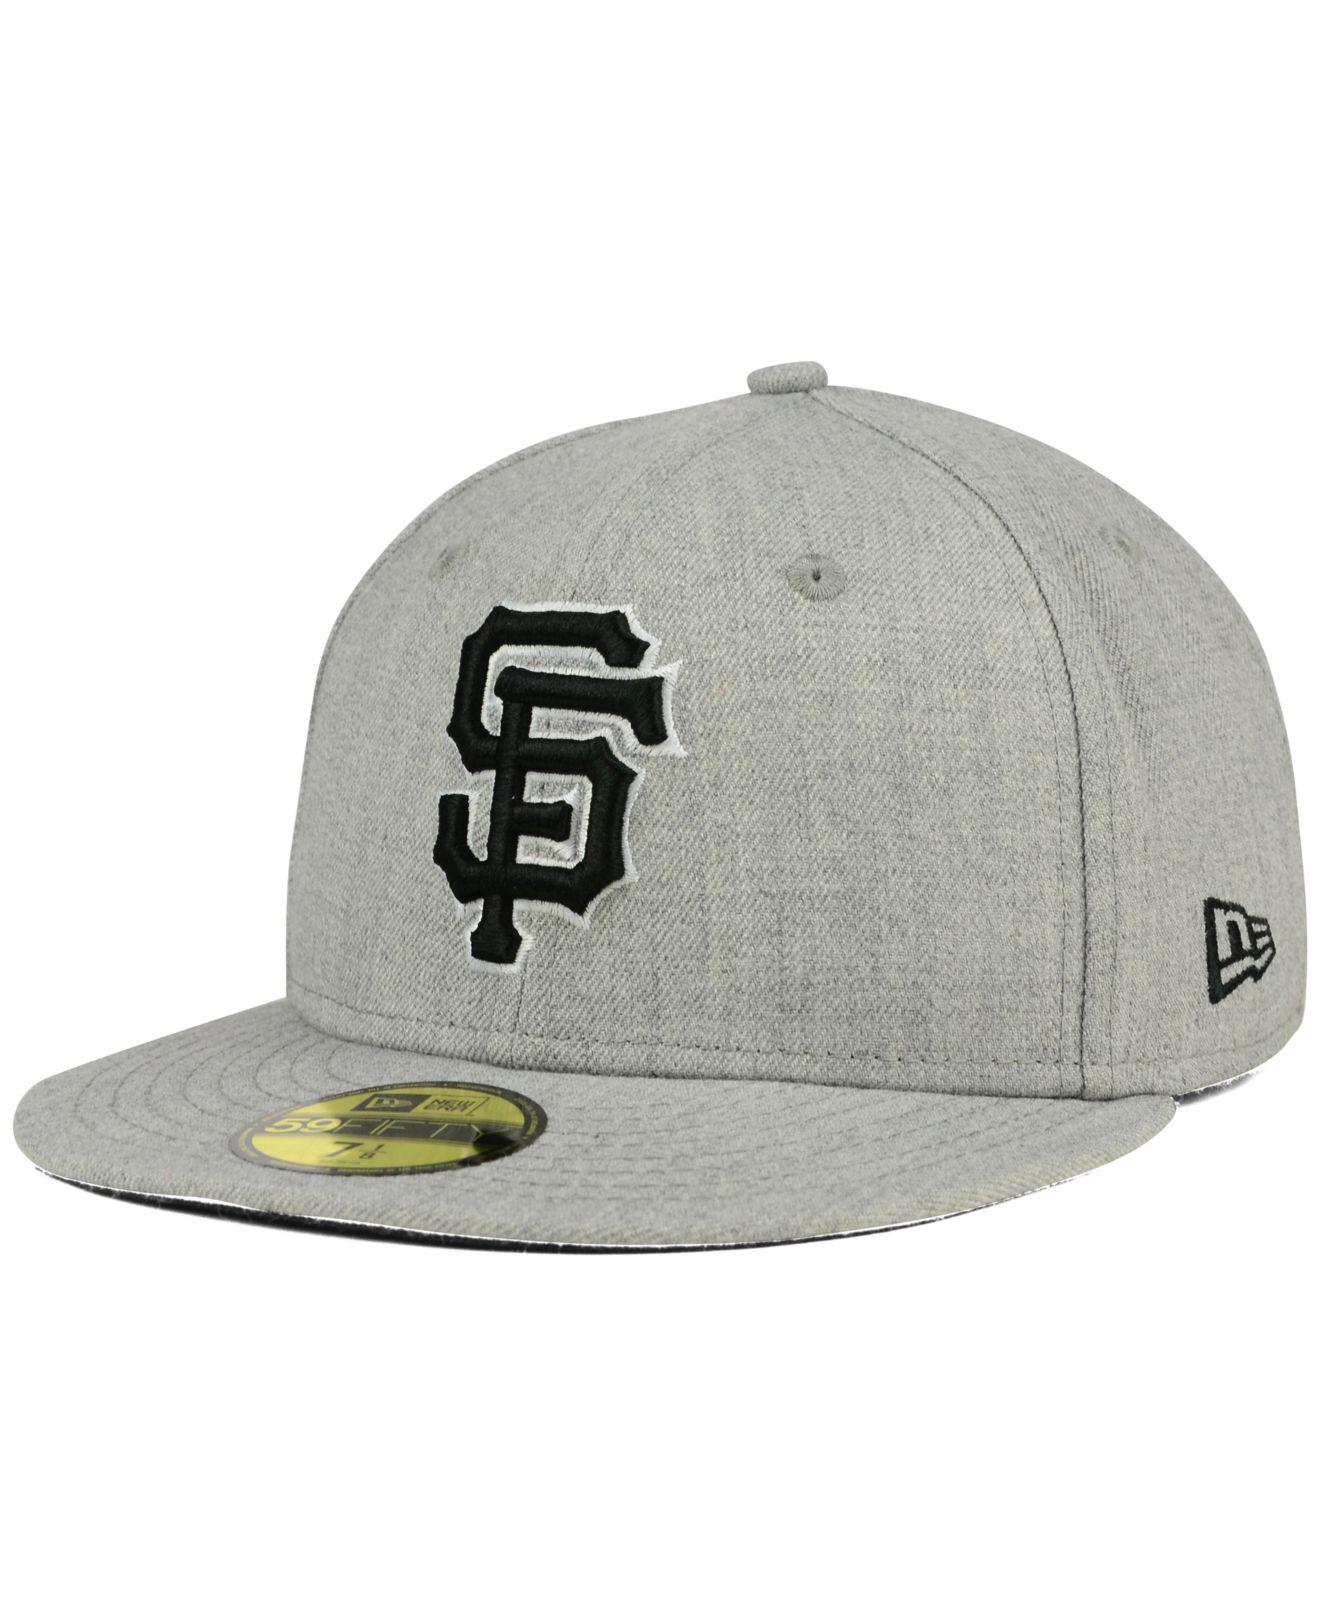 KTZ - Gray San Francisco Giants Heather Black White 59fifty Cap for Men -  Lyst. View fullscreen 14a6dfe43